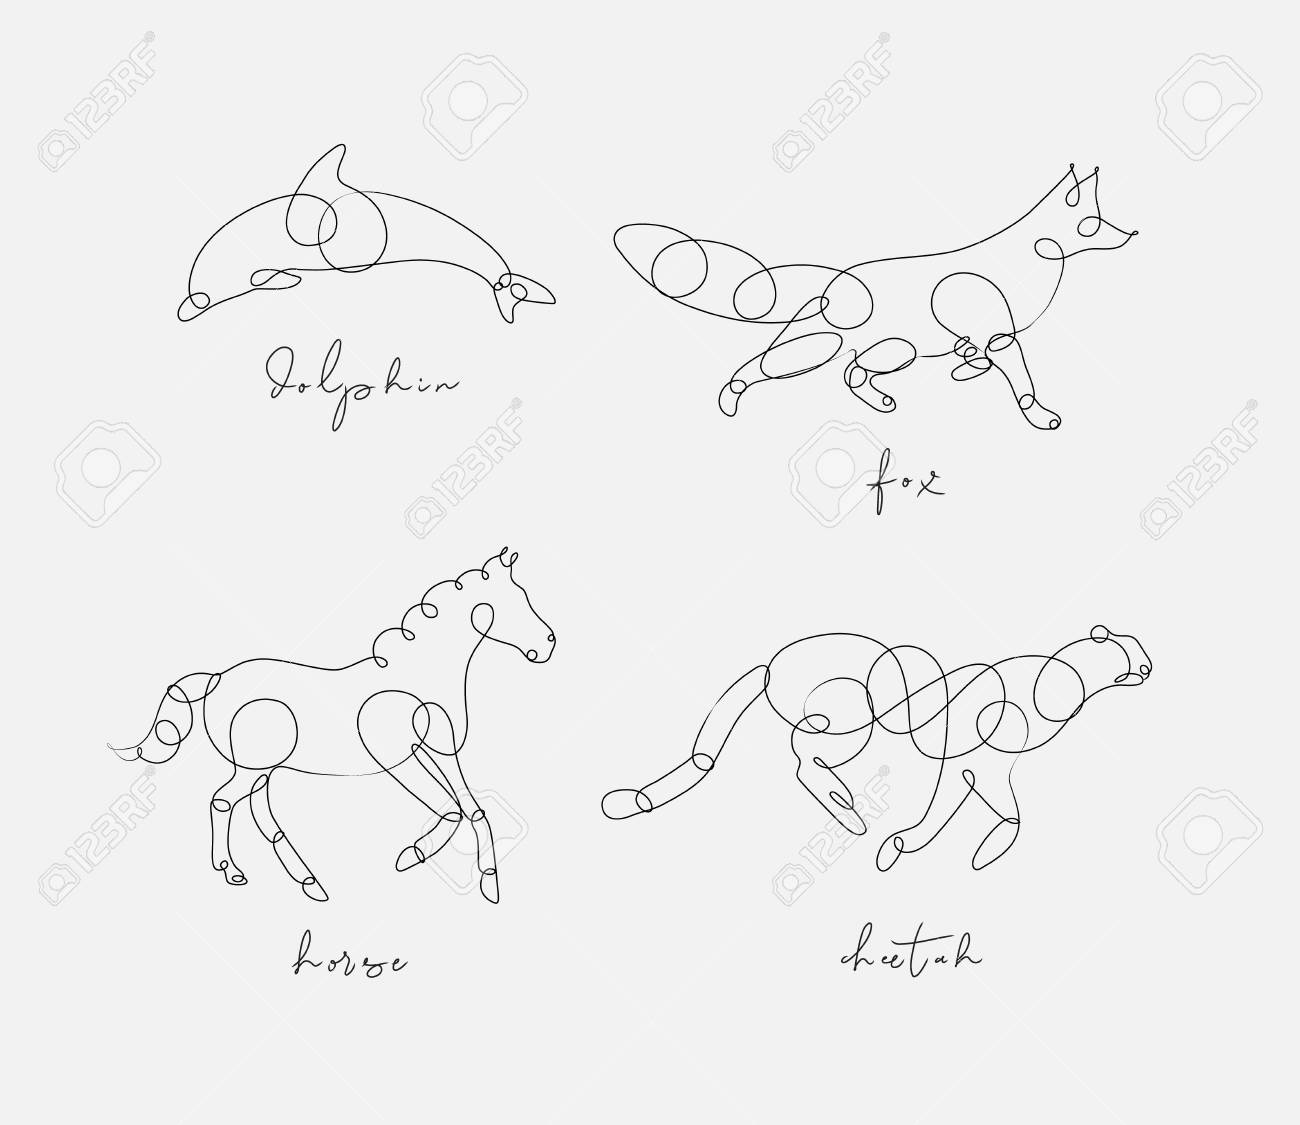 Set of animals dolphin, fox, horse, cheetah drawing in pen line style on light background - 115436365